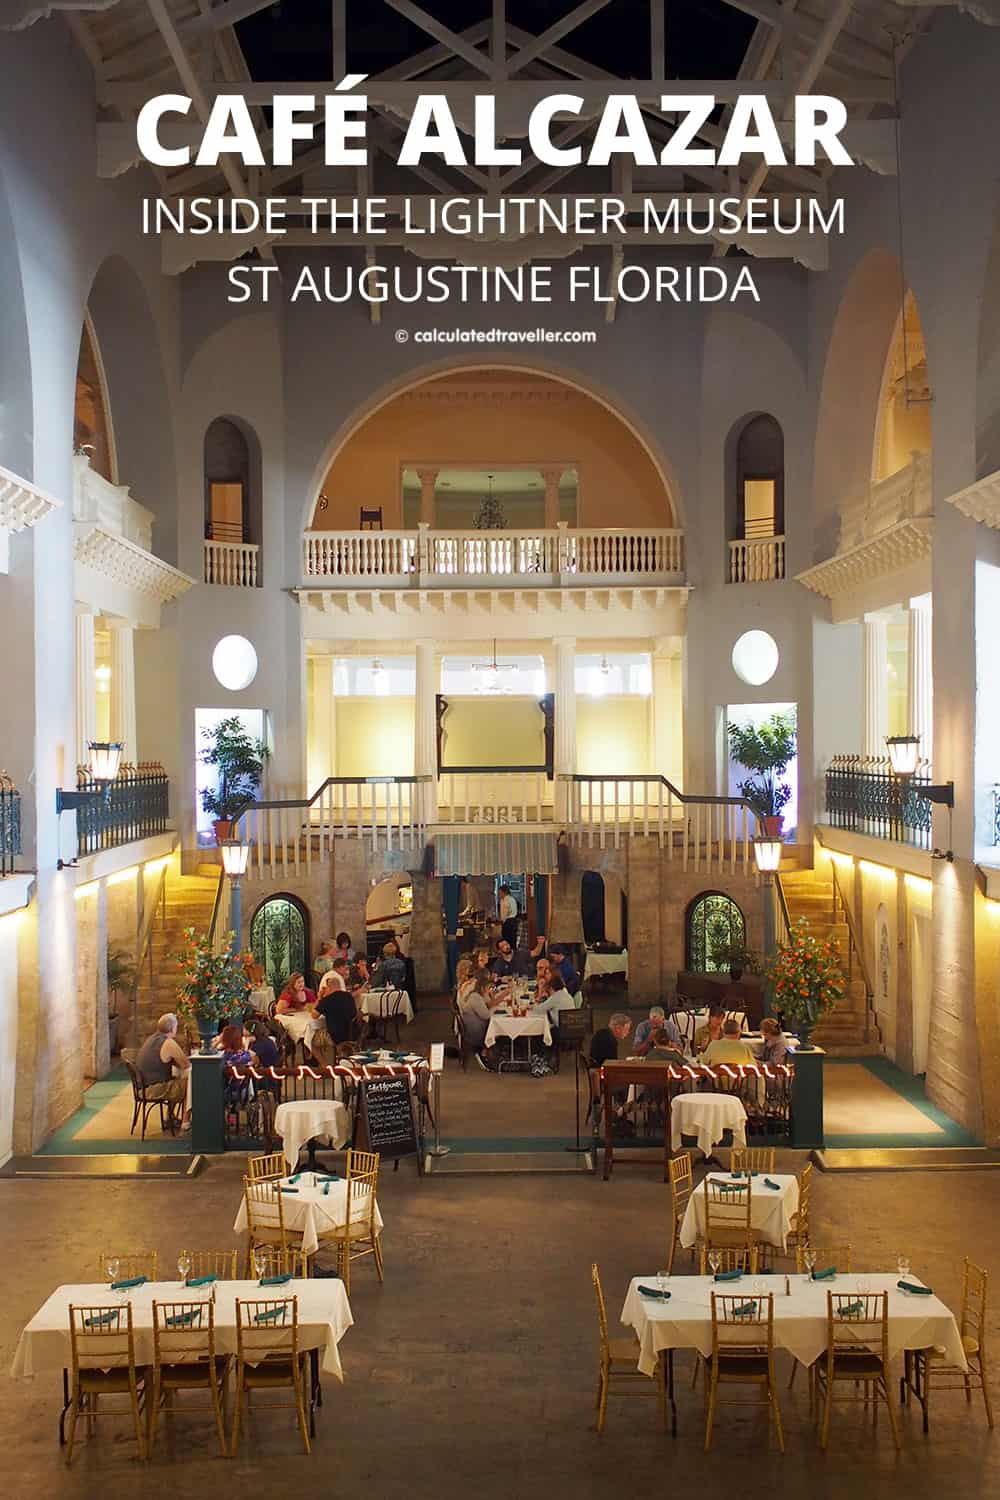 A Traveller's Guide to St Augustine Florida - History and Fun. Café Alcazar in the historic Lightner Museum is a one of kind experience surrounded by history in St Augustine Florida